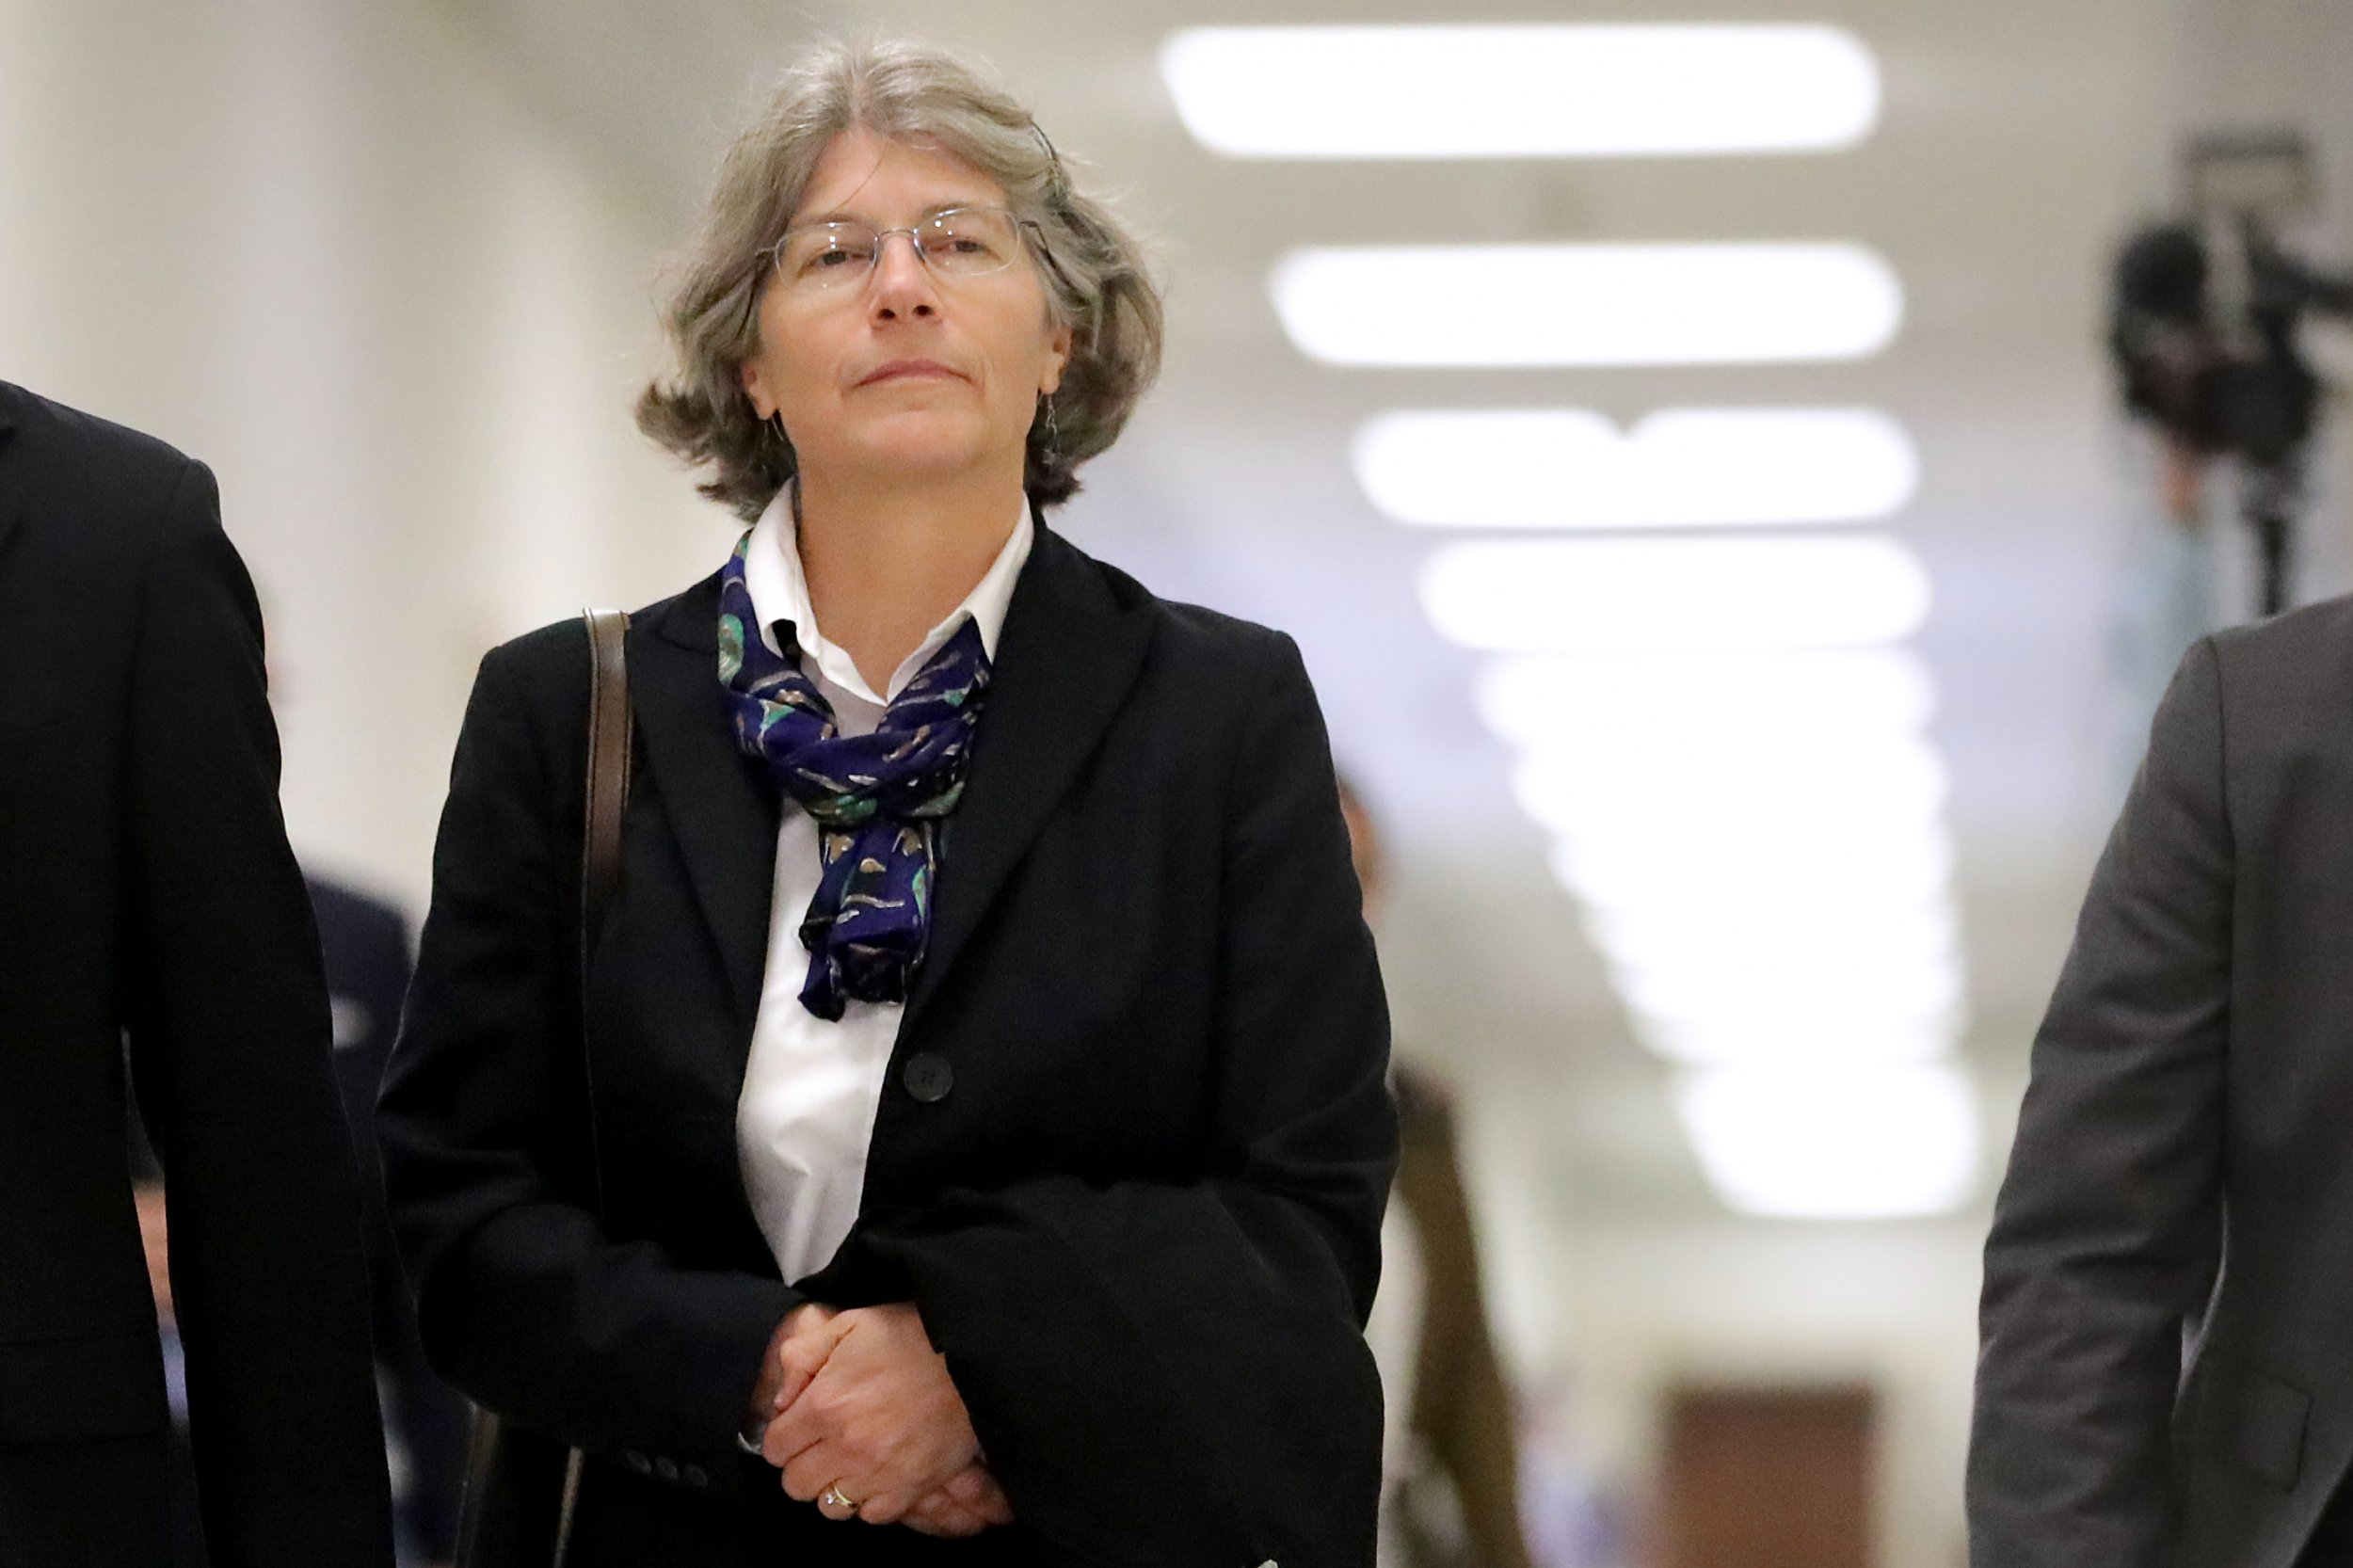 who is molly ohr, nellie, donald trump, bruce